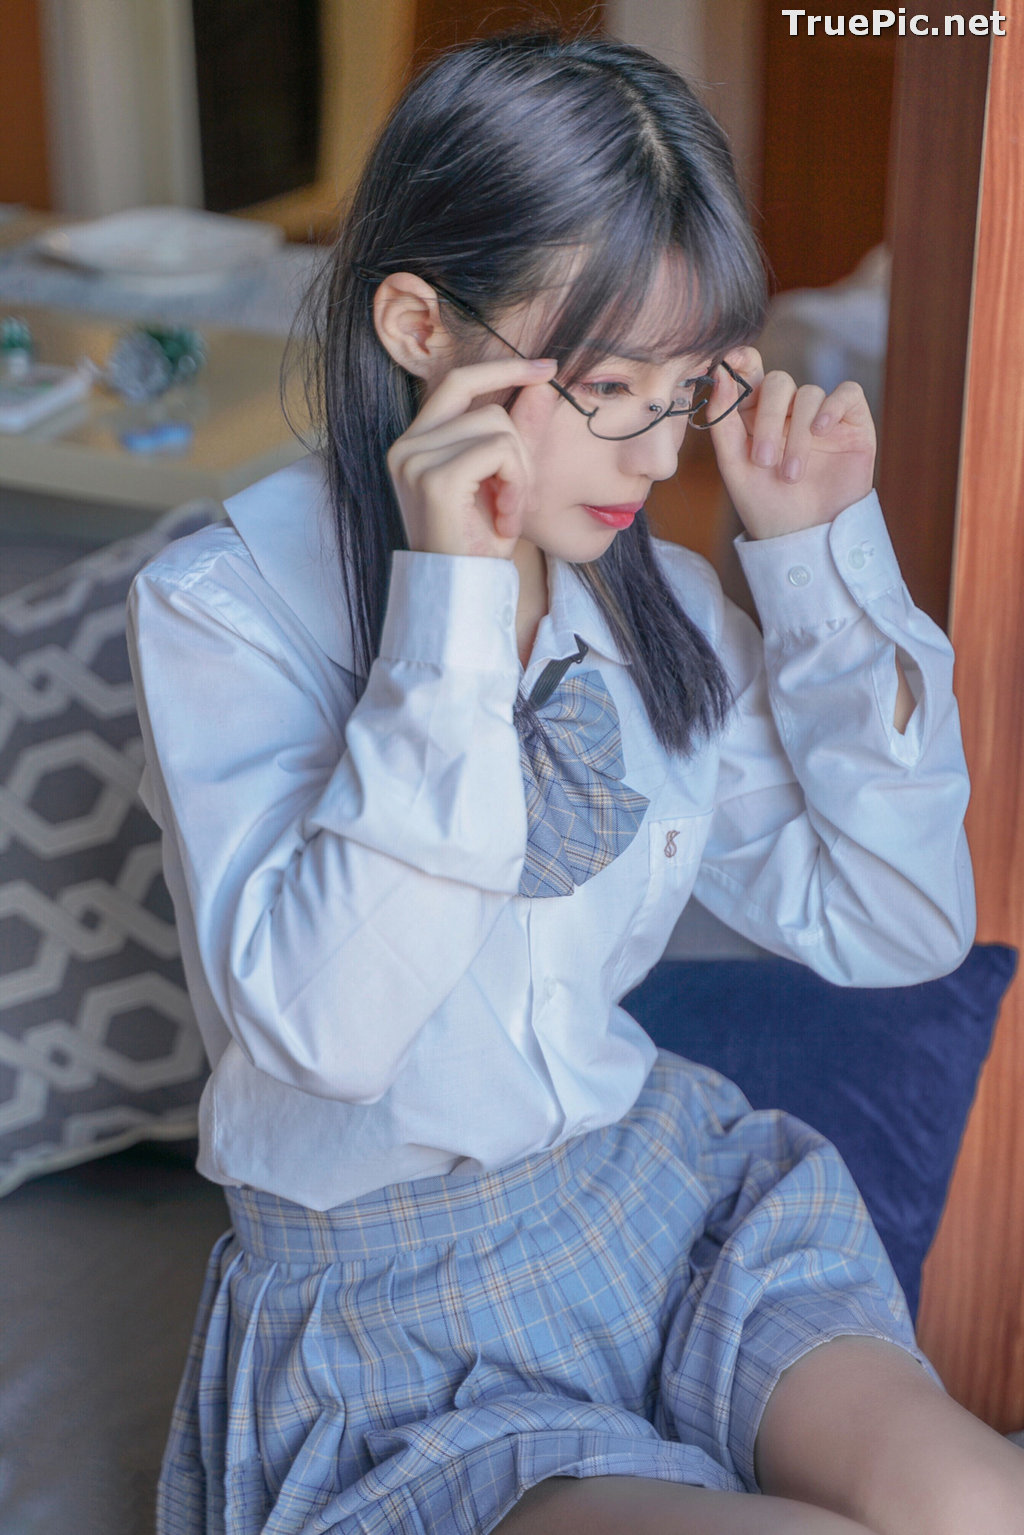 Image [MTCos] 喵糖映画 Vol.047 – Chinese Cute Model – Sexy Student Uniform - TruePic.net - Picture-37